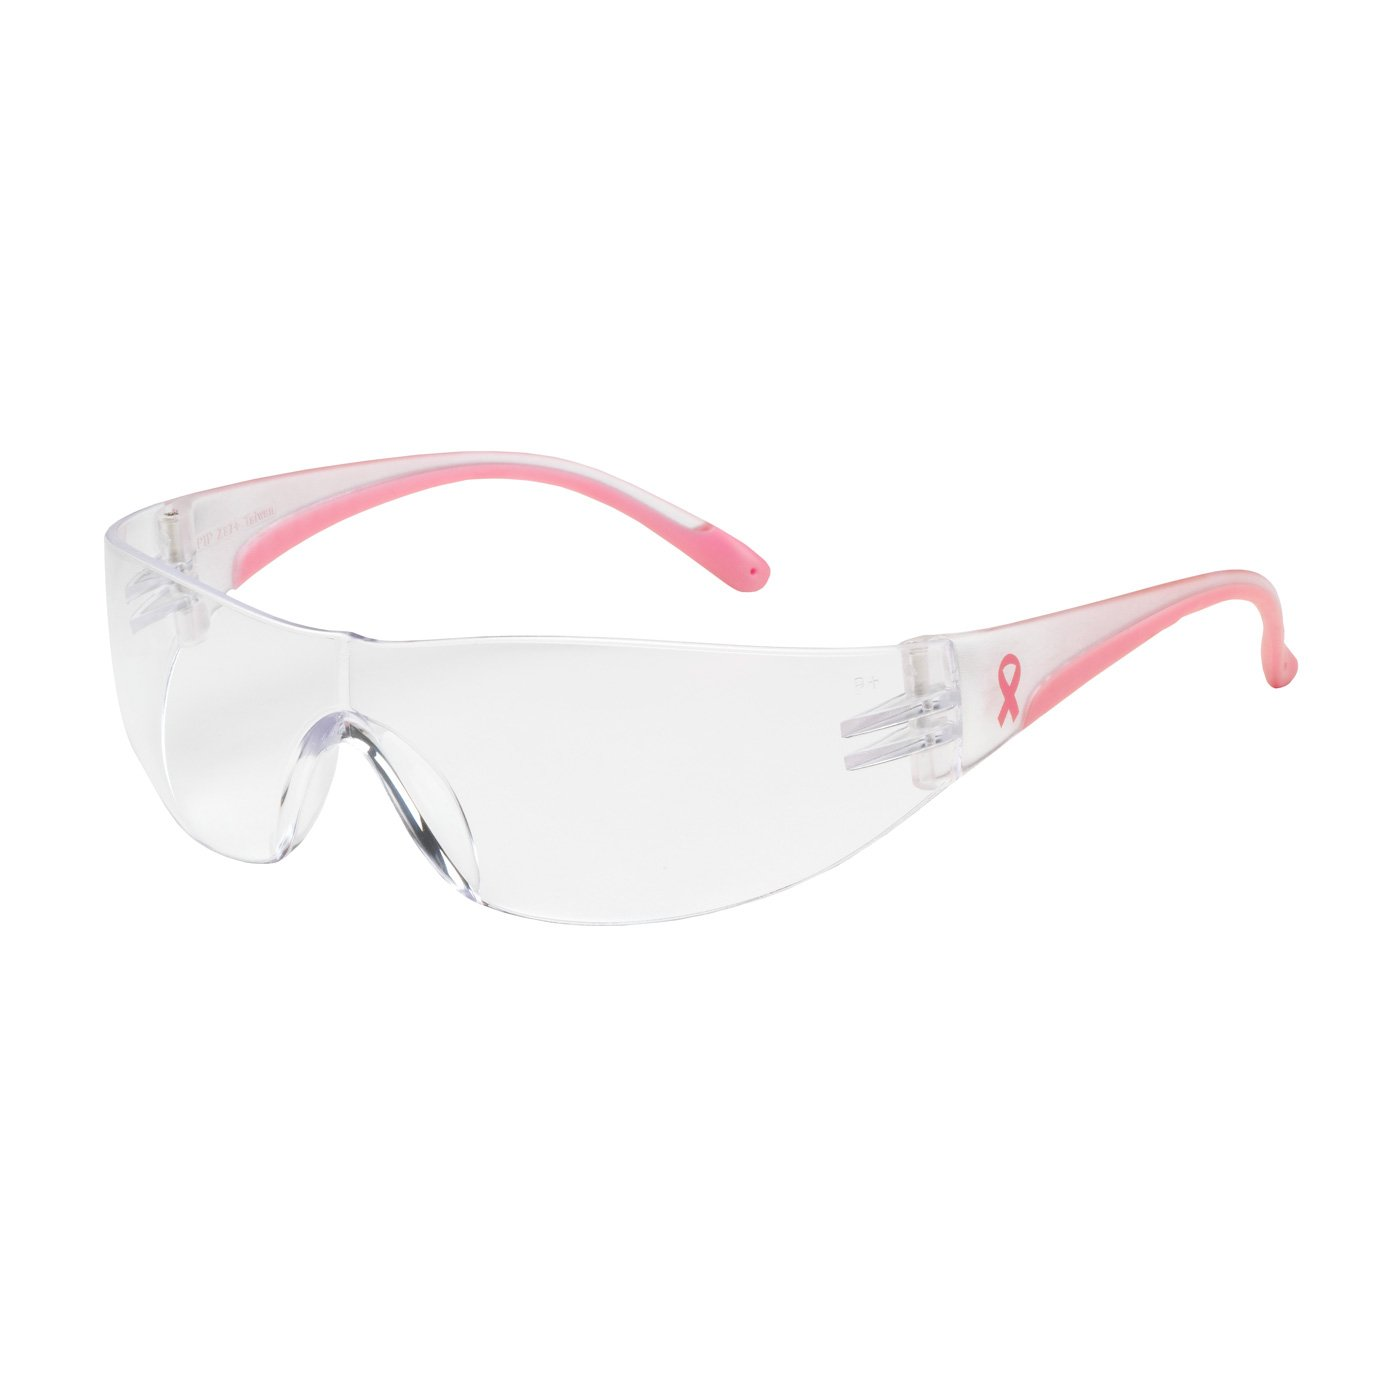 Bouton 250-10-0900 Eva Women's Safety Luxury goods Popular BCA with Ribb Glasses Pink